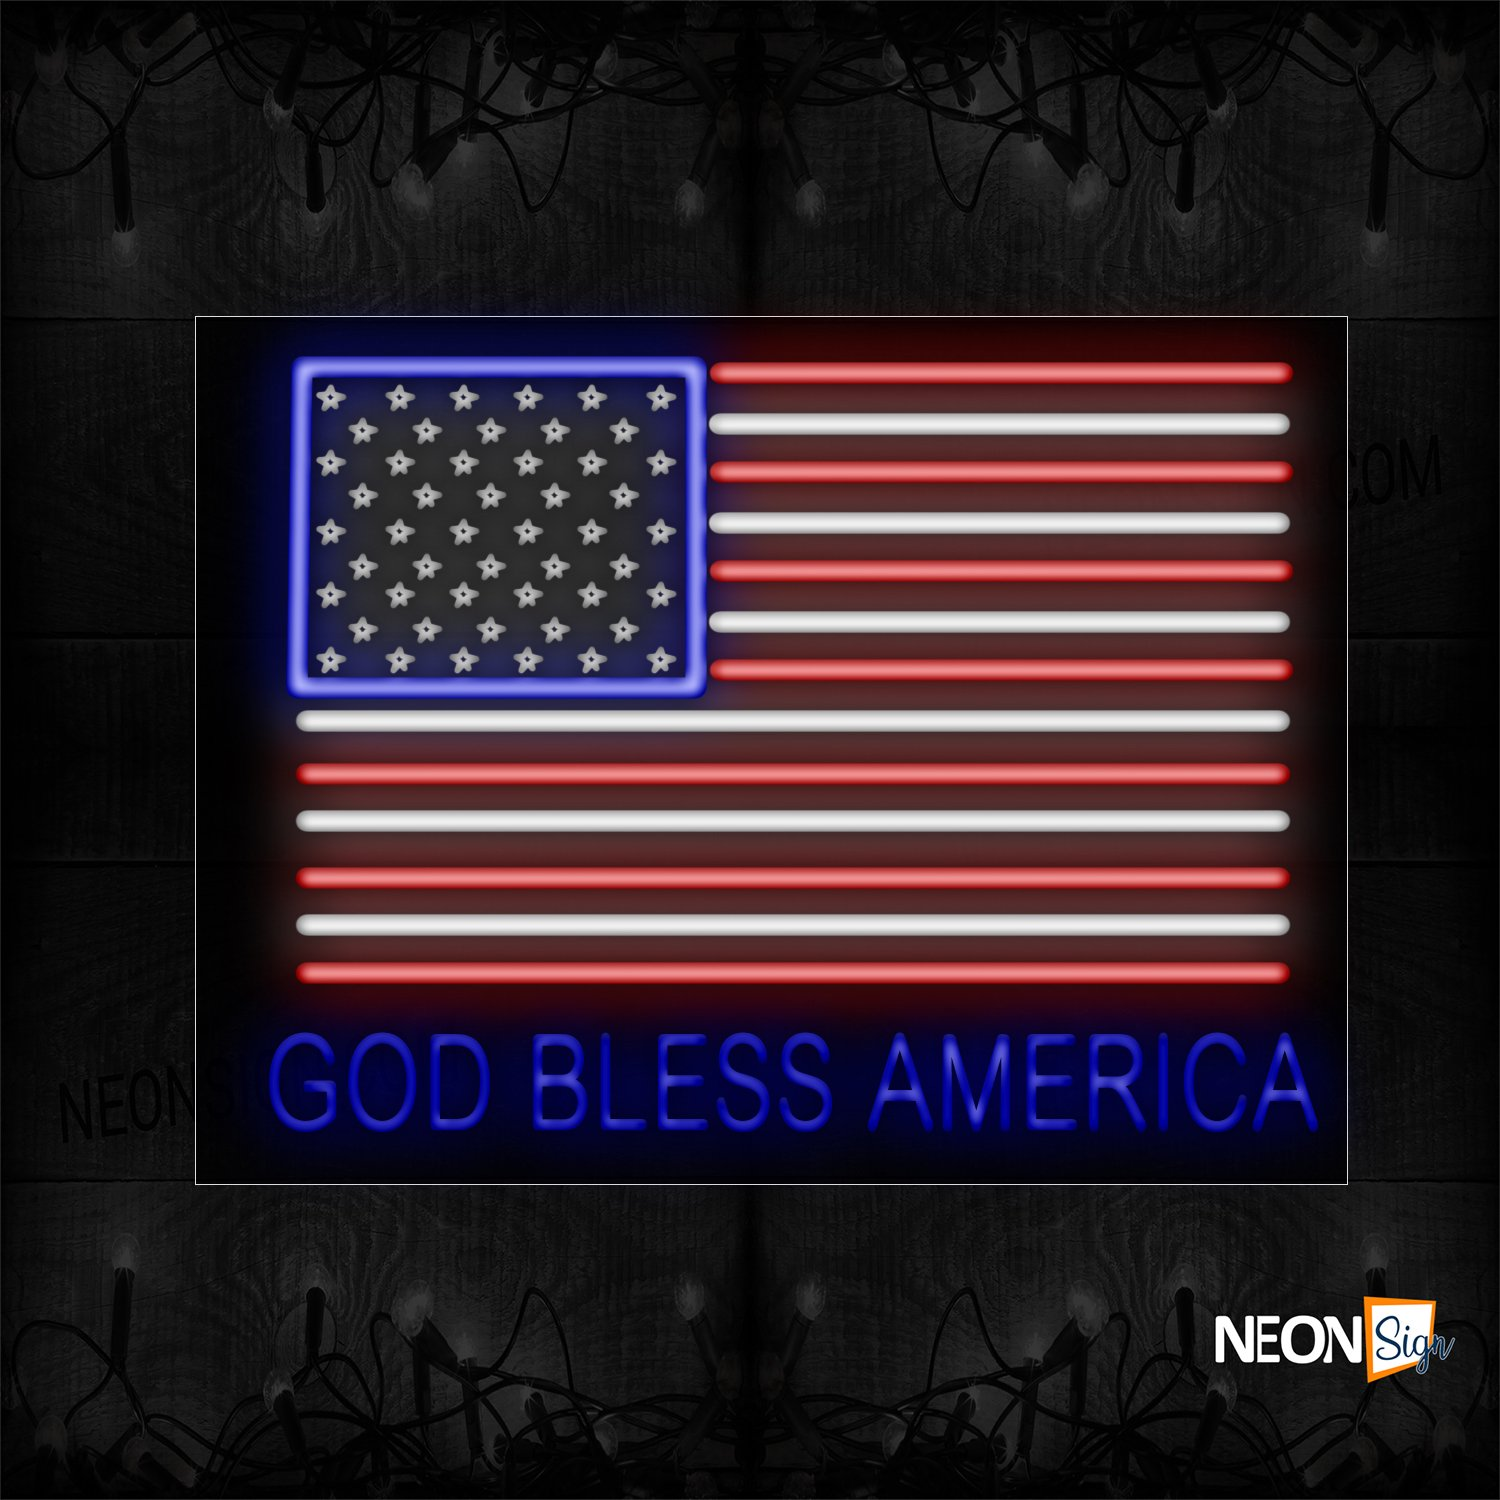 Image of 11240 God Bless America With American Flag Neon Sign_24x31 Black Backing